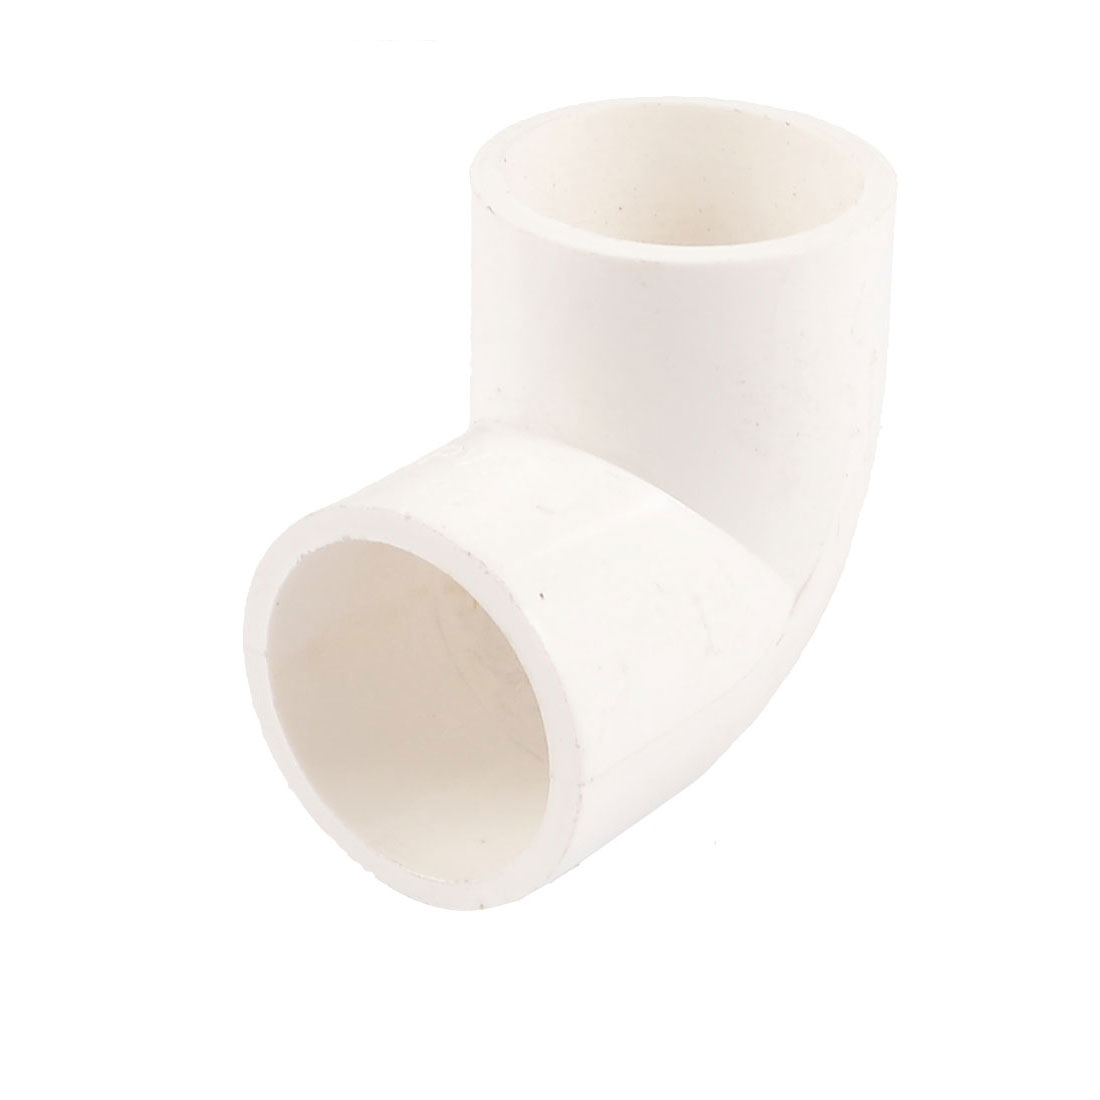 PVC-U 25mm Drainage Pipe Adapter Connector 90 Degree Elbow White 5 Pcs